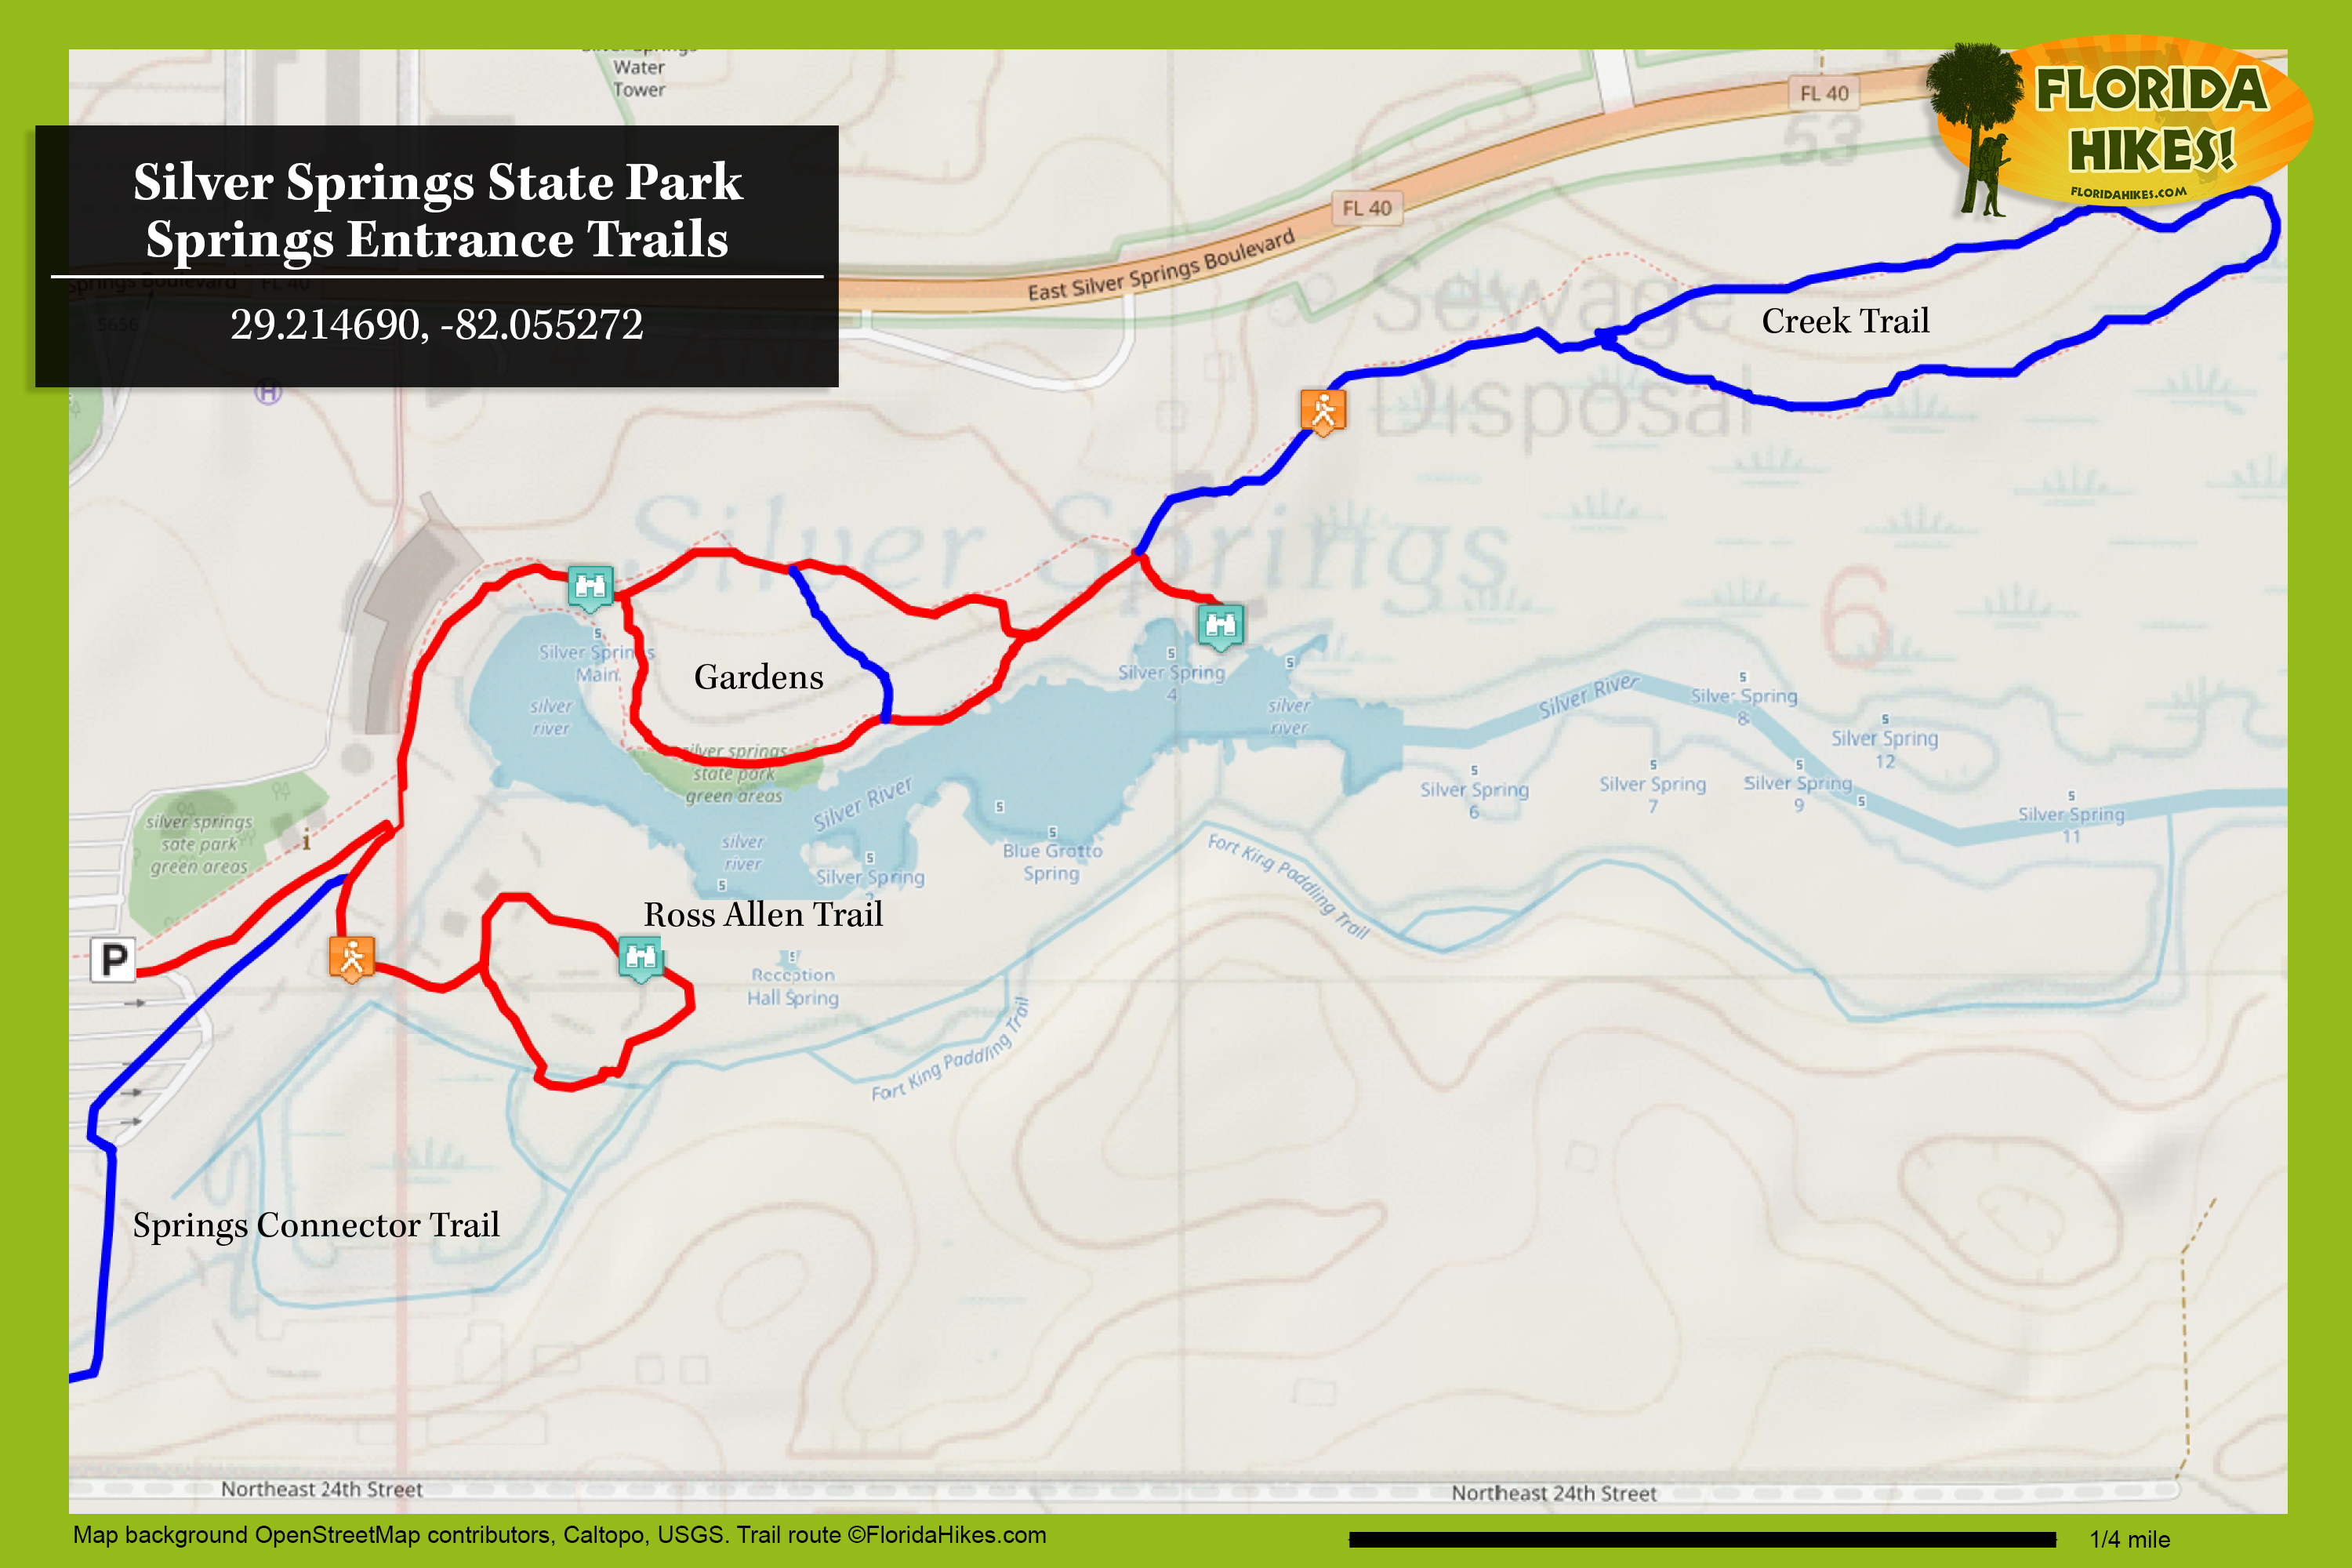 Map Of Springs In Florida.Silver Springs State Park Florida Hikes